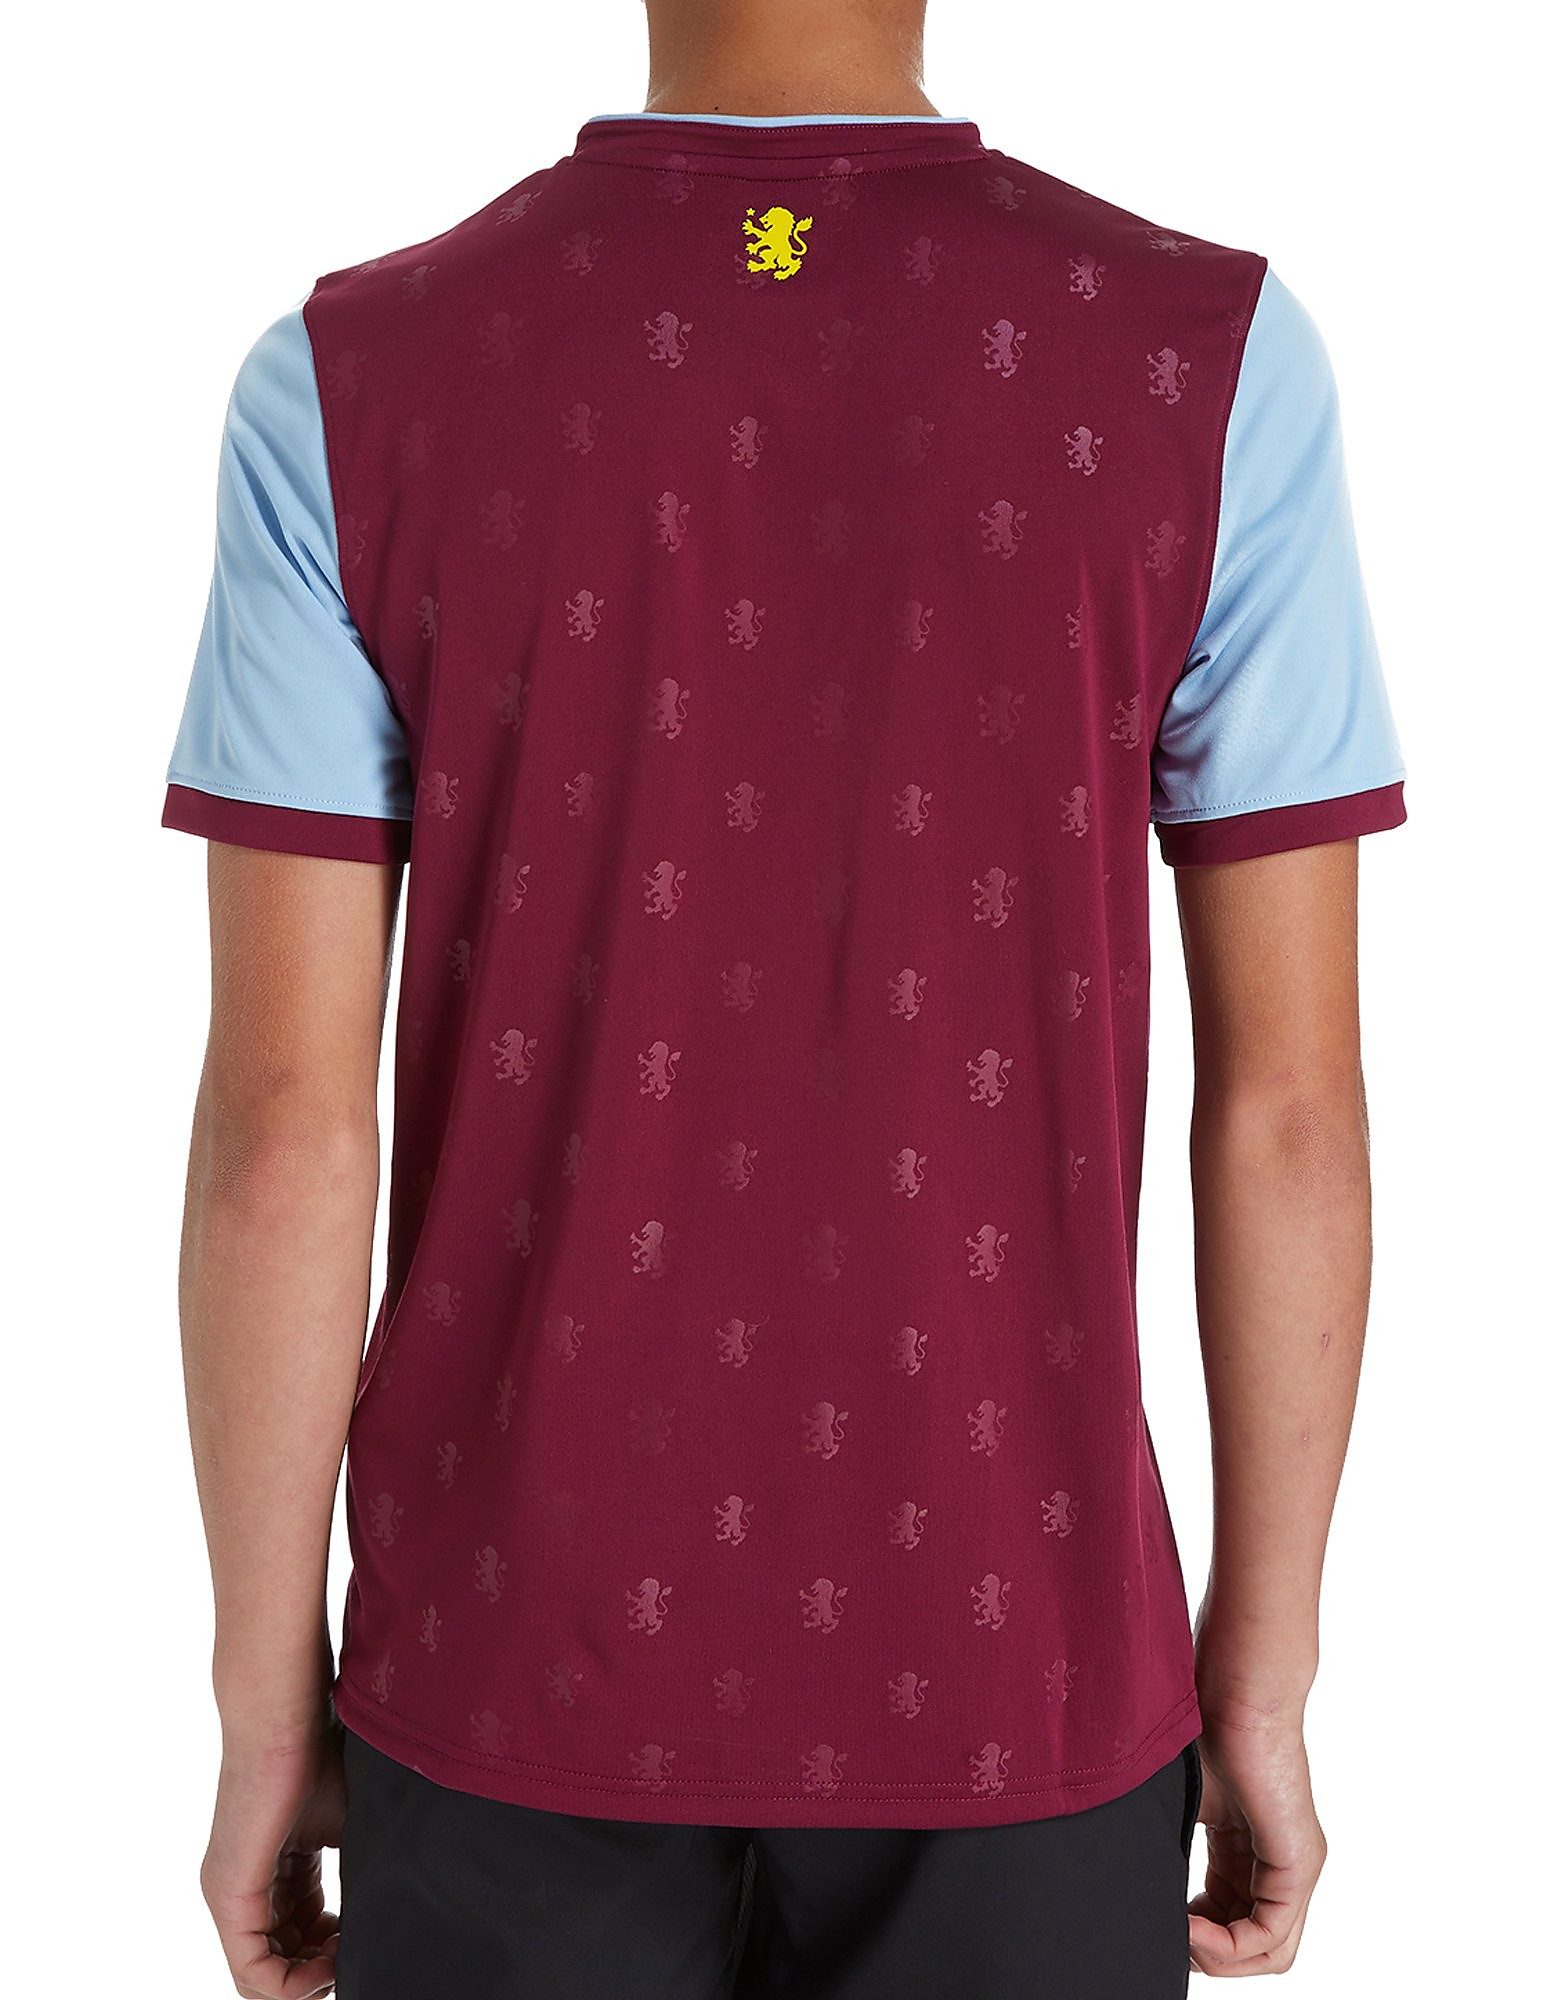 Under Armour Aston Villa Home Shirt 2017/18 Junior